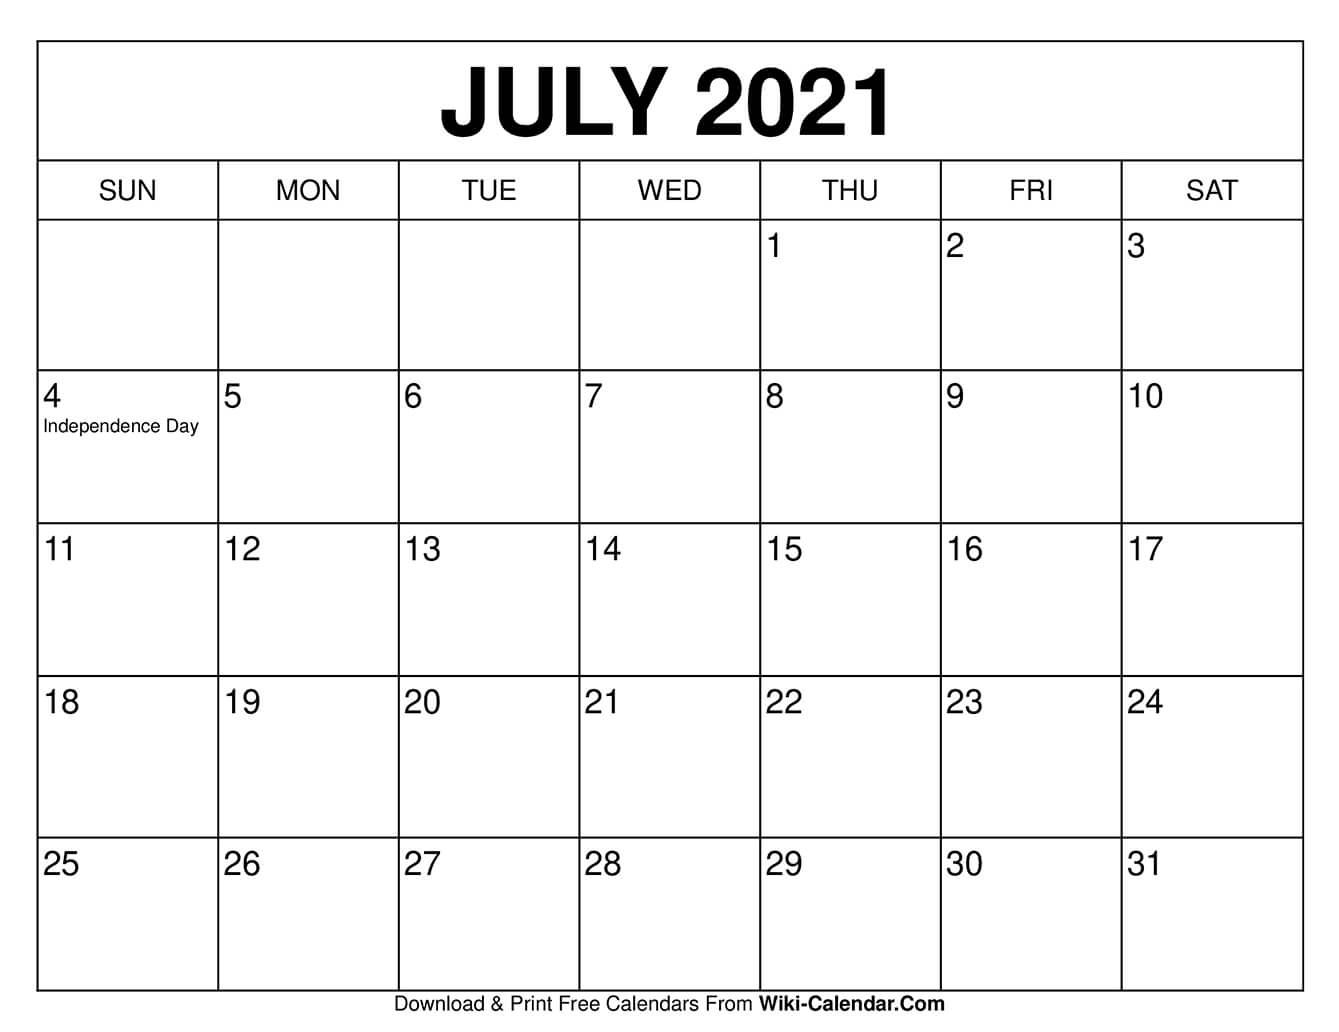 July 2021 Calendar In 2020 | Blank Calendar Template